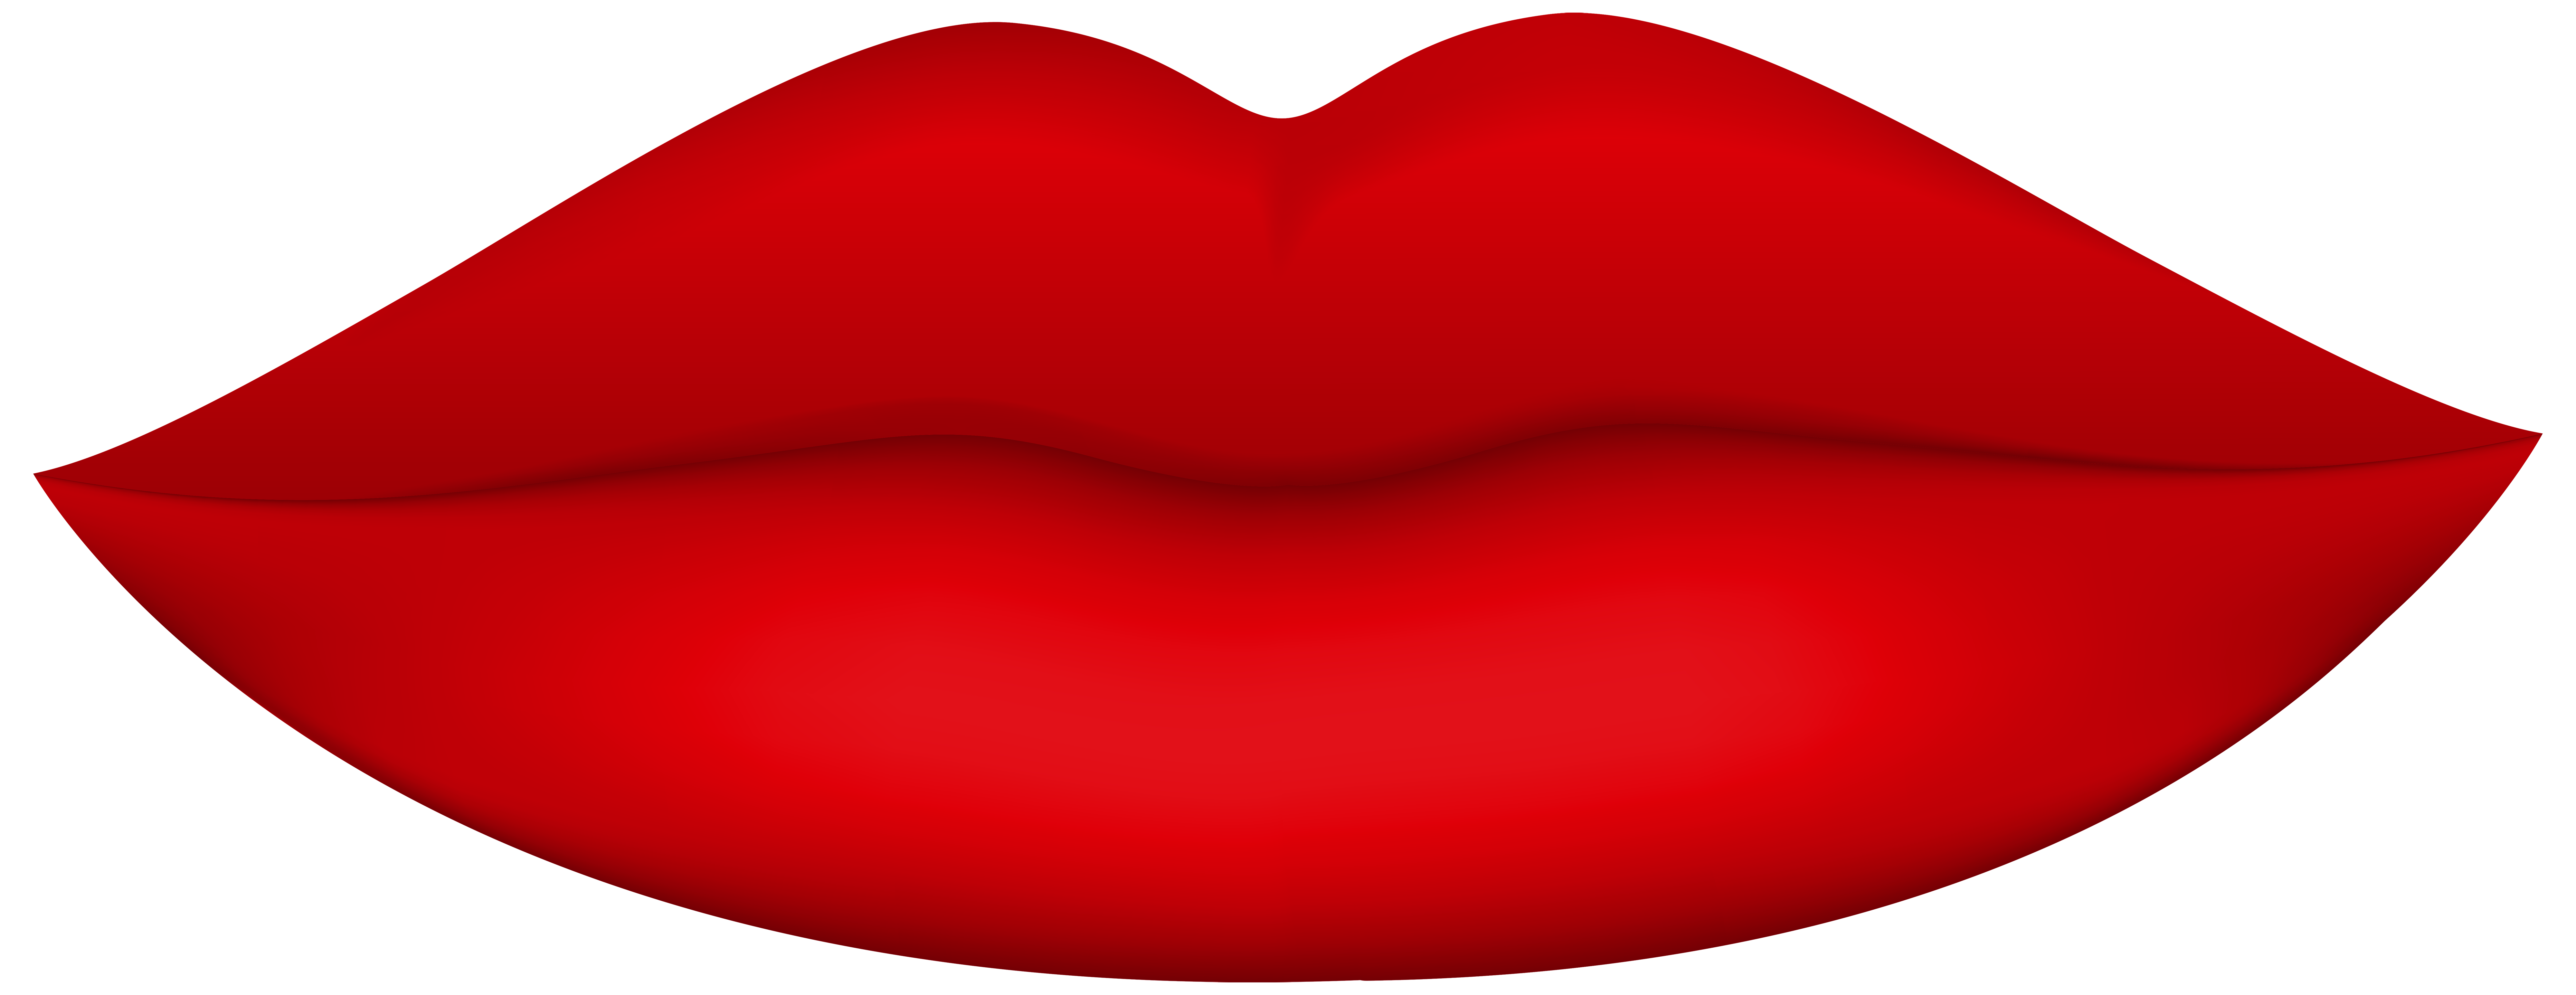 Lipstick clipart png graphic black and white stock Red Lips PNG Clip Art - Best WEB Clipart graphic black and white stock